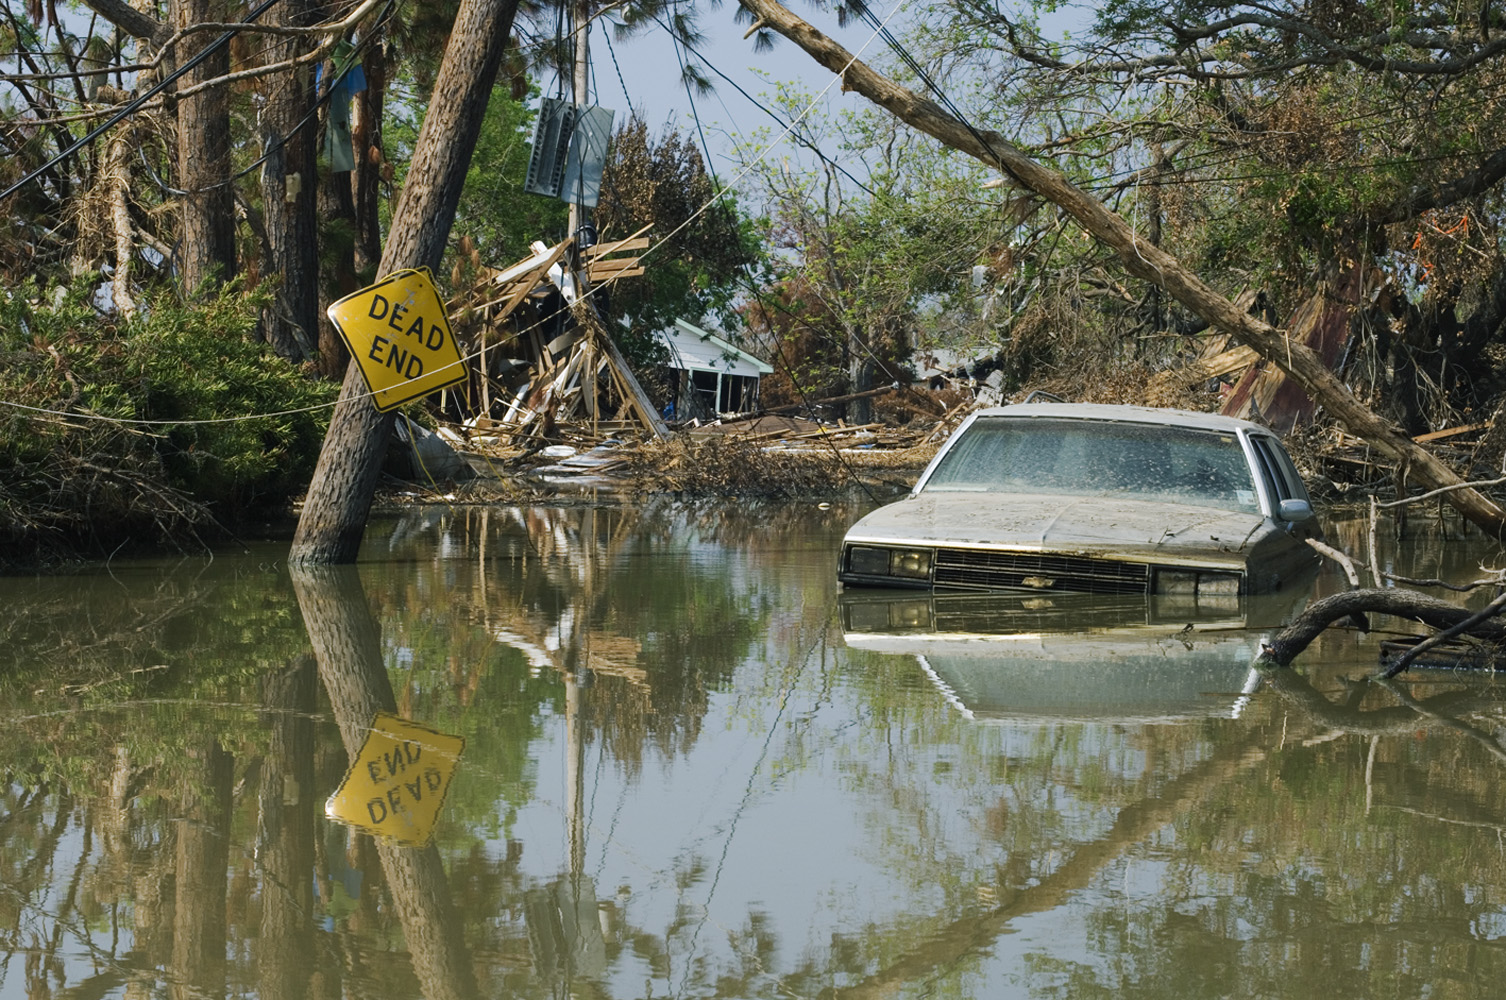 19 September 2005 Plaquemines Parish, Louisiana, USA. Day 21 after hurricane Katrina. Devastation is total and villages are still flooded with contaminated water.